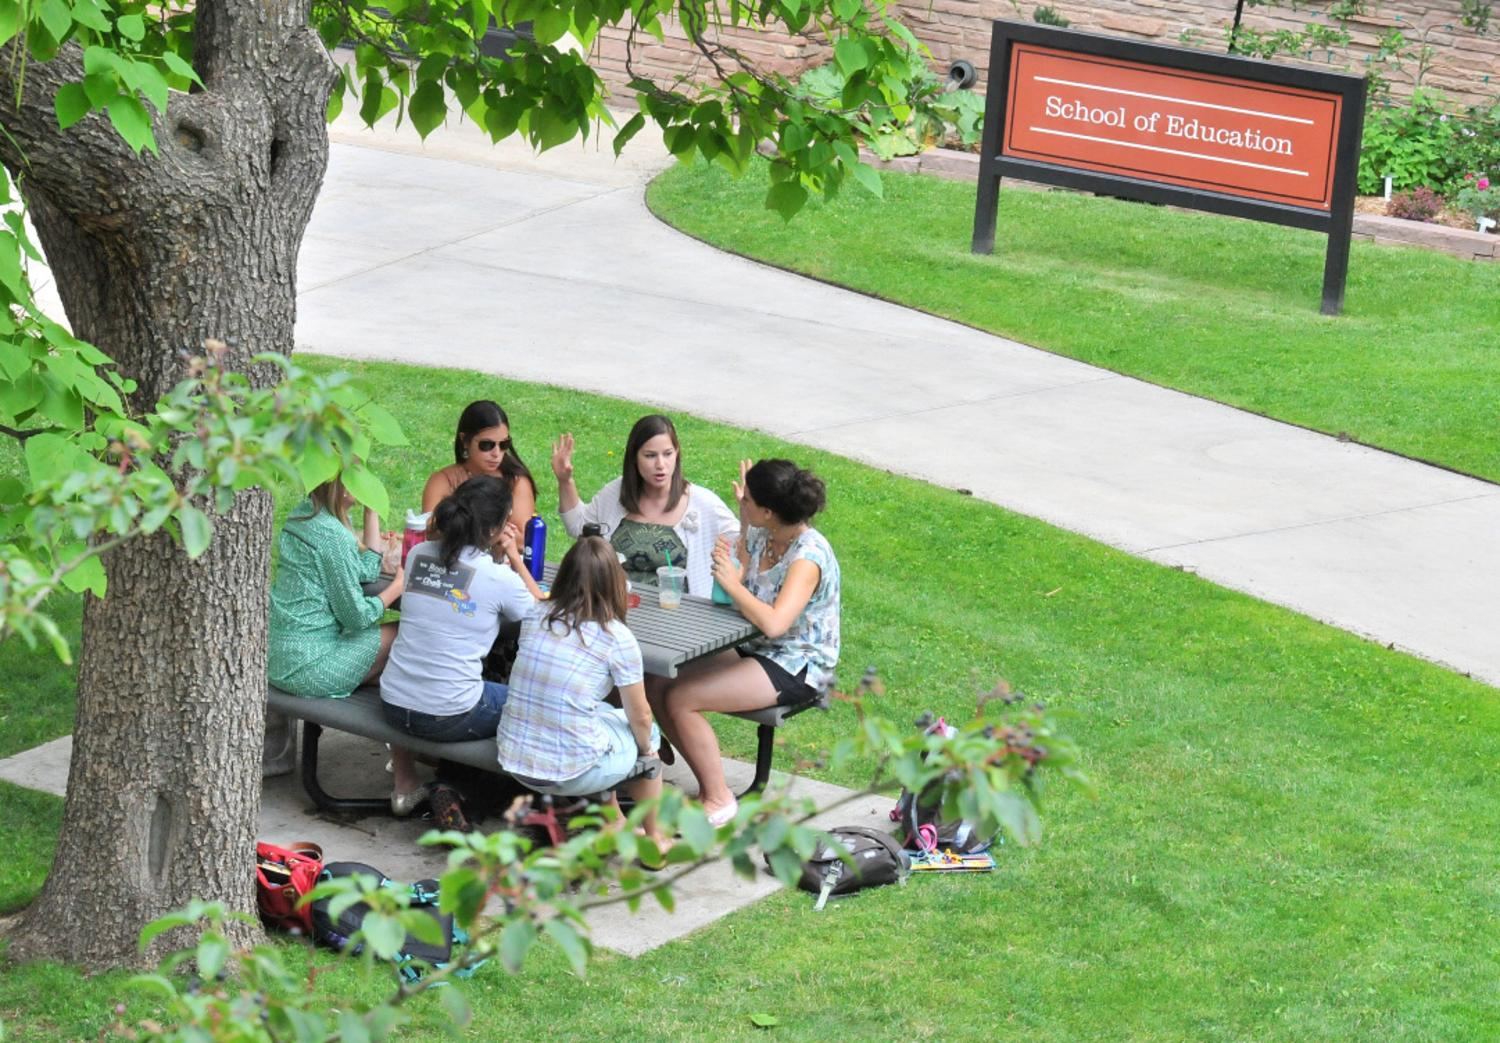 Students socialize outside the School of Education building.